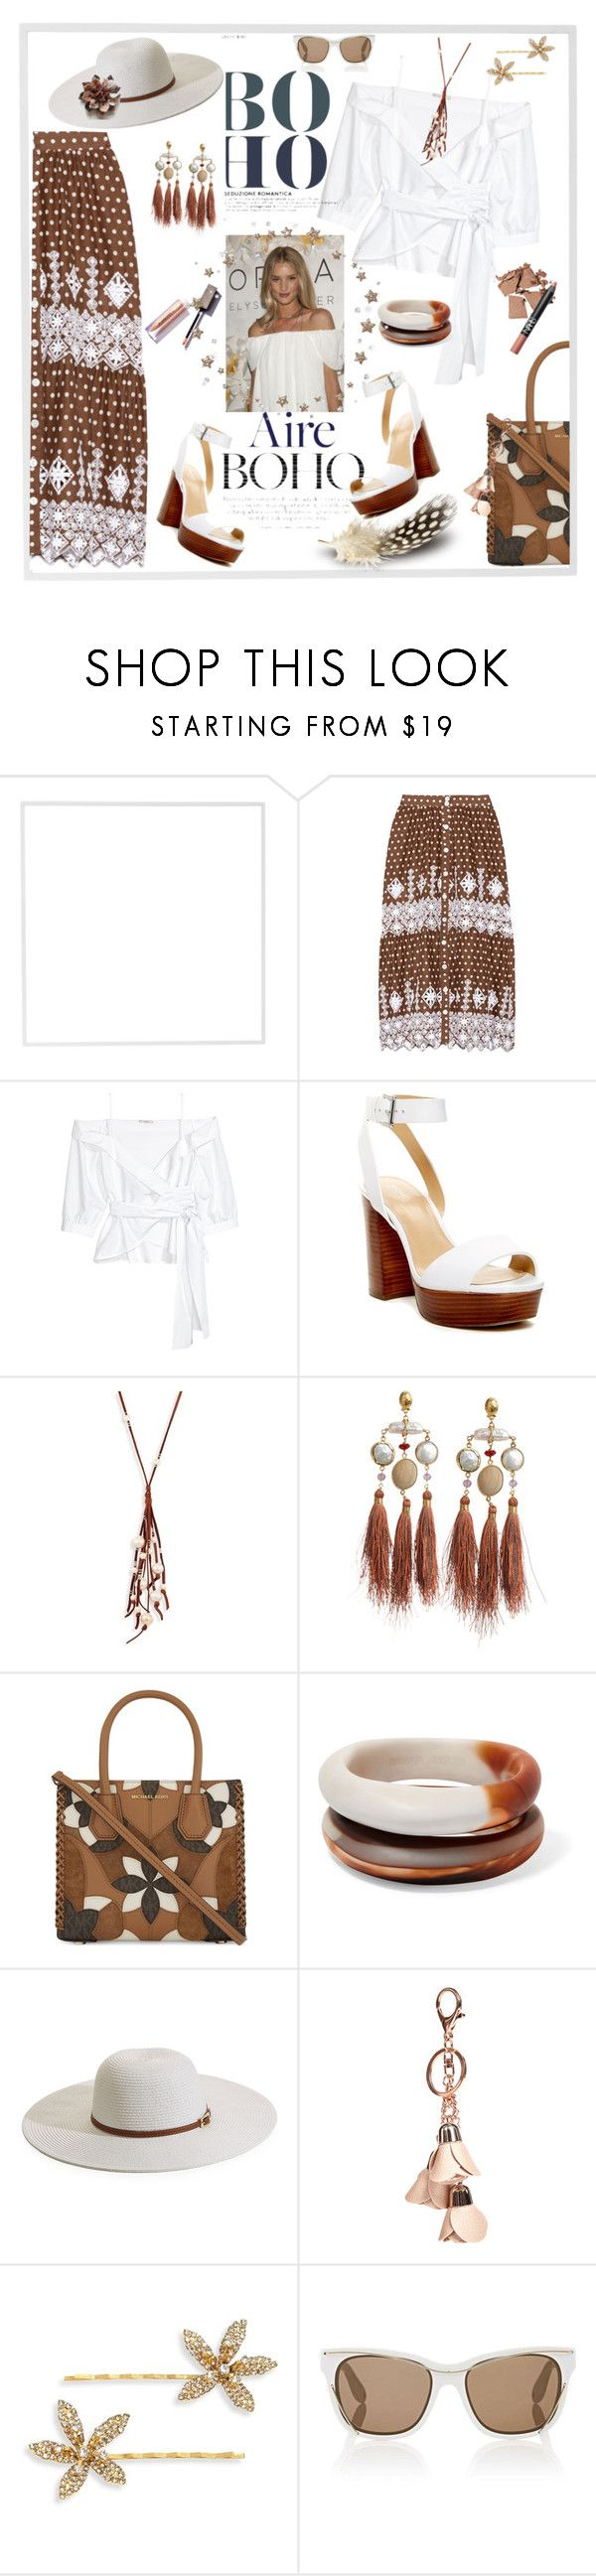 """""""Brown and White"""" by honkytonkdancer ❤ liked on Polyvore featuring Menu, Miguelina, MICHAEL Michael Kors, Chan Luu, Gas Bijoux, Dinosaur Designs, Melissa Odabash, GUESS, Jennifer Behr and Givenchy"""